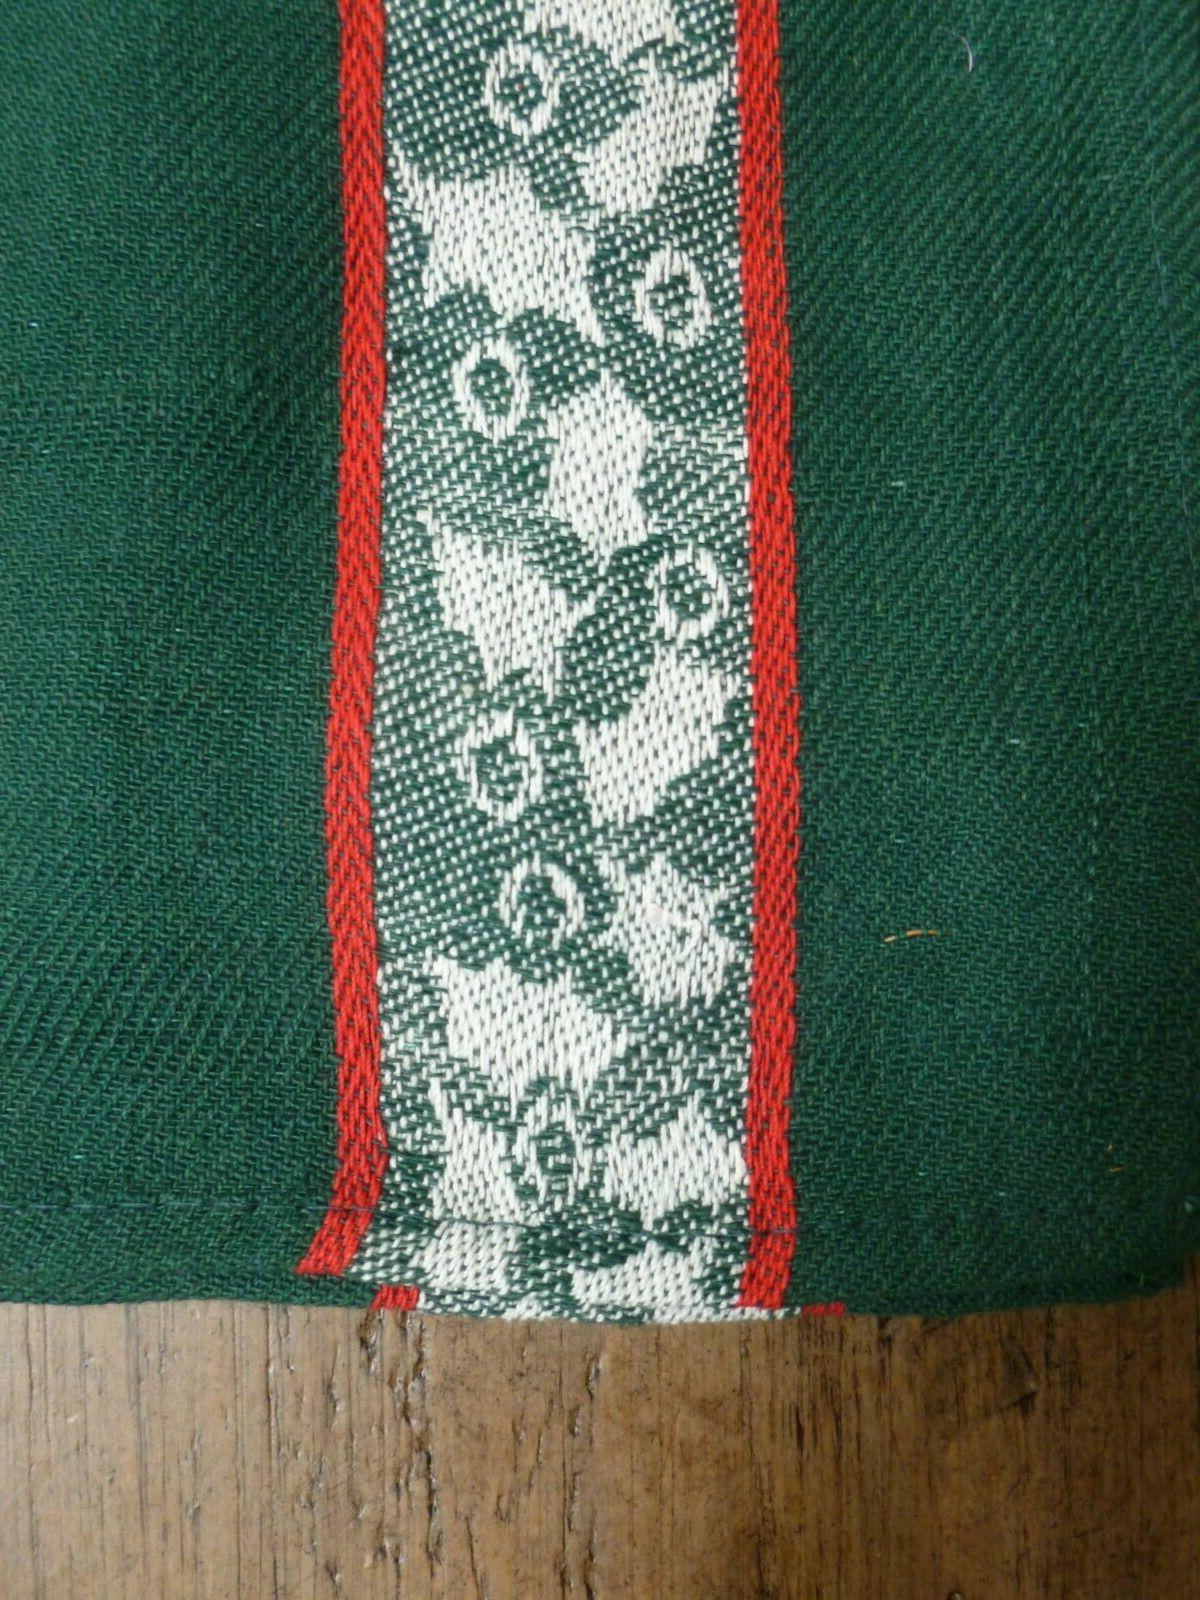 2 TAG Towels ~ Holly ~ 26 by Cotton India